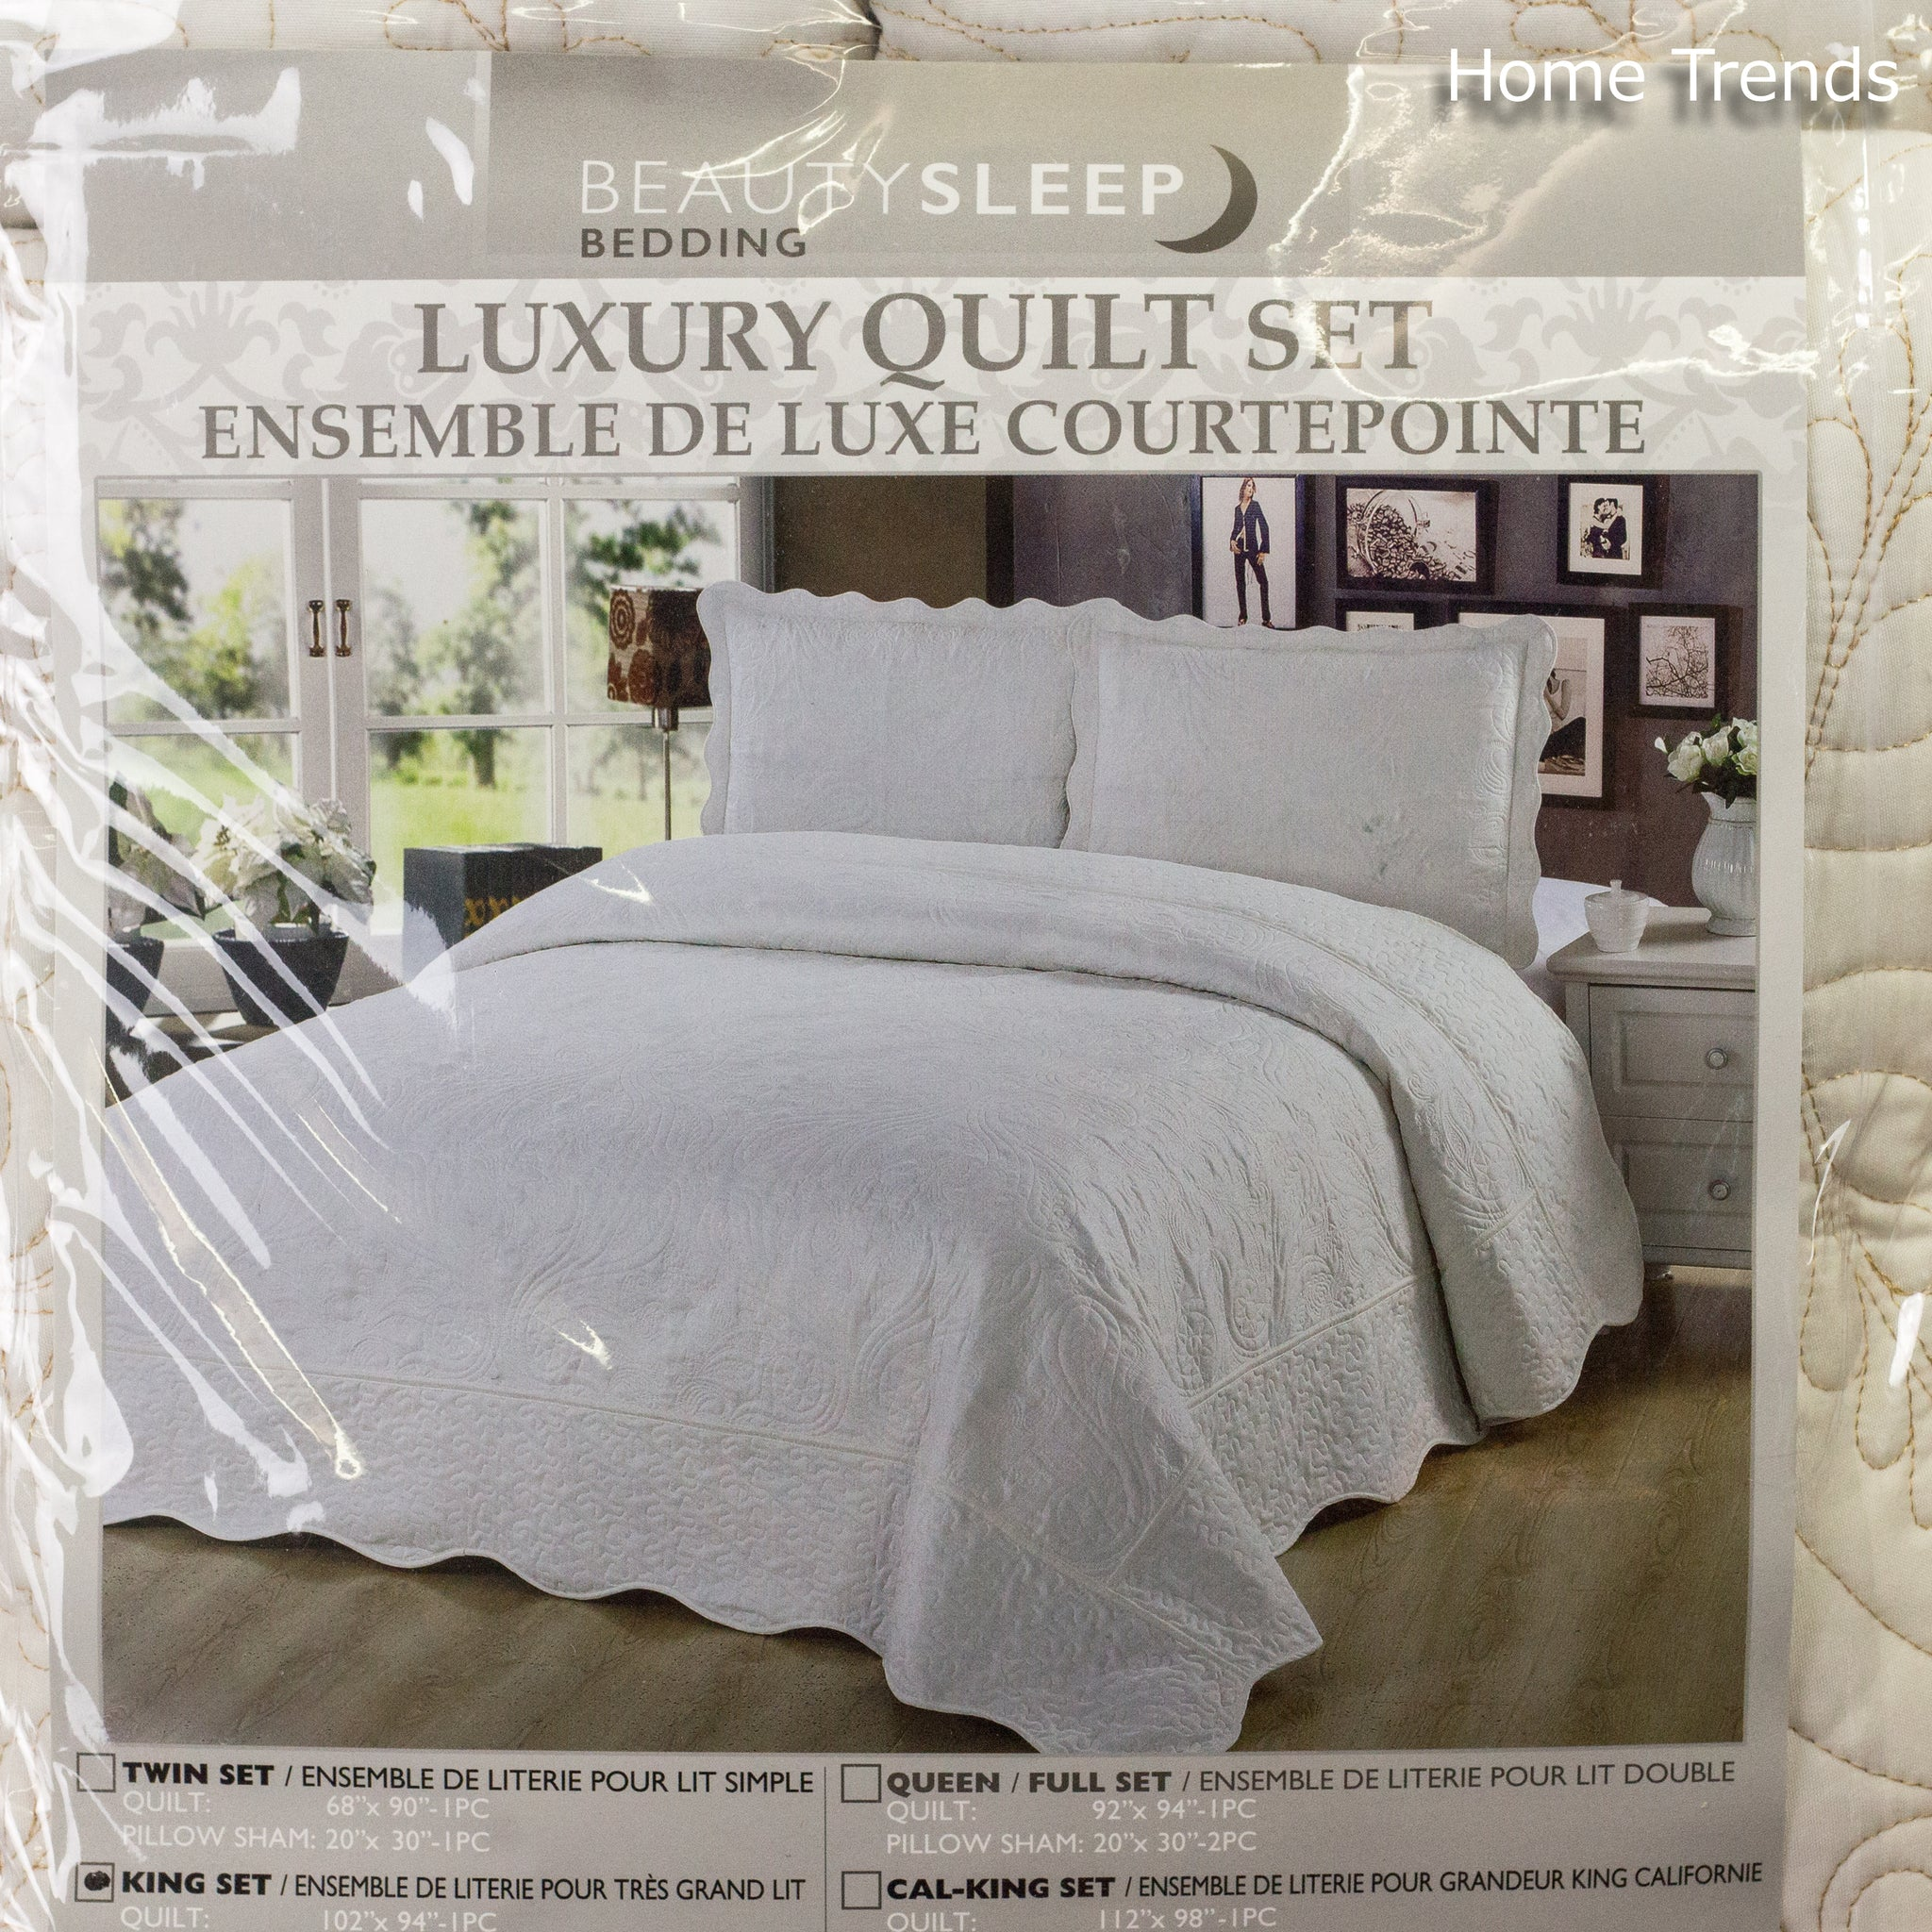 Bedding Off White King Luxury Quilt Set Home Trends